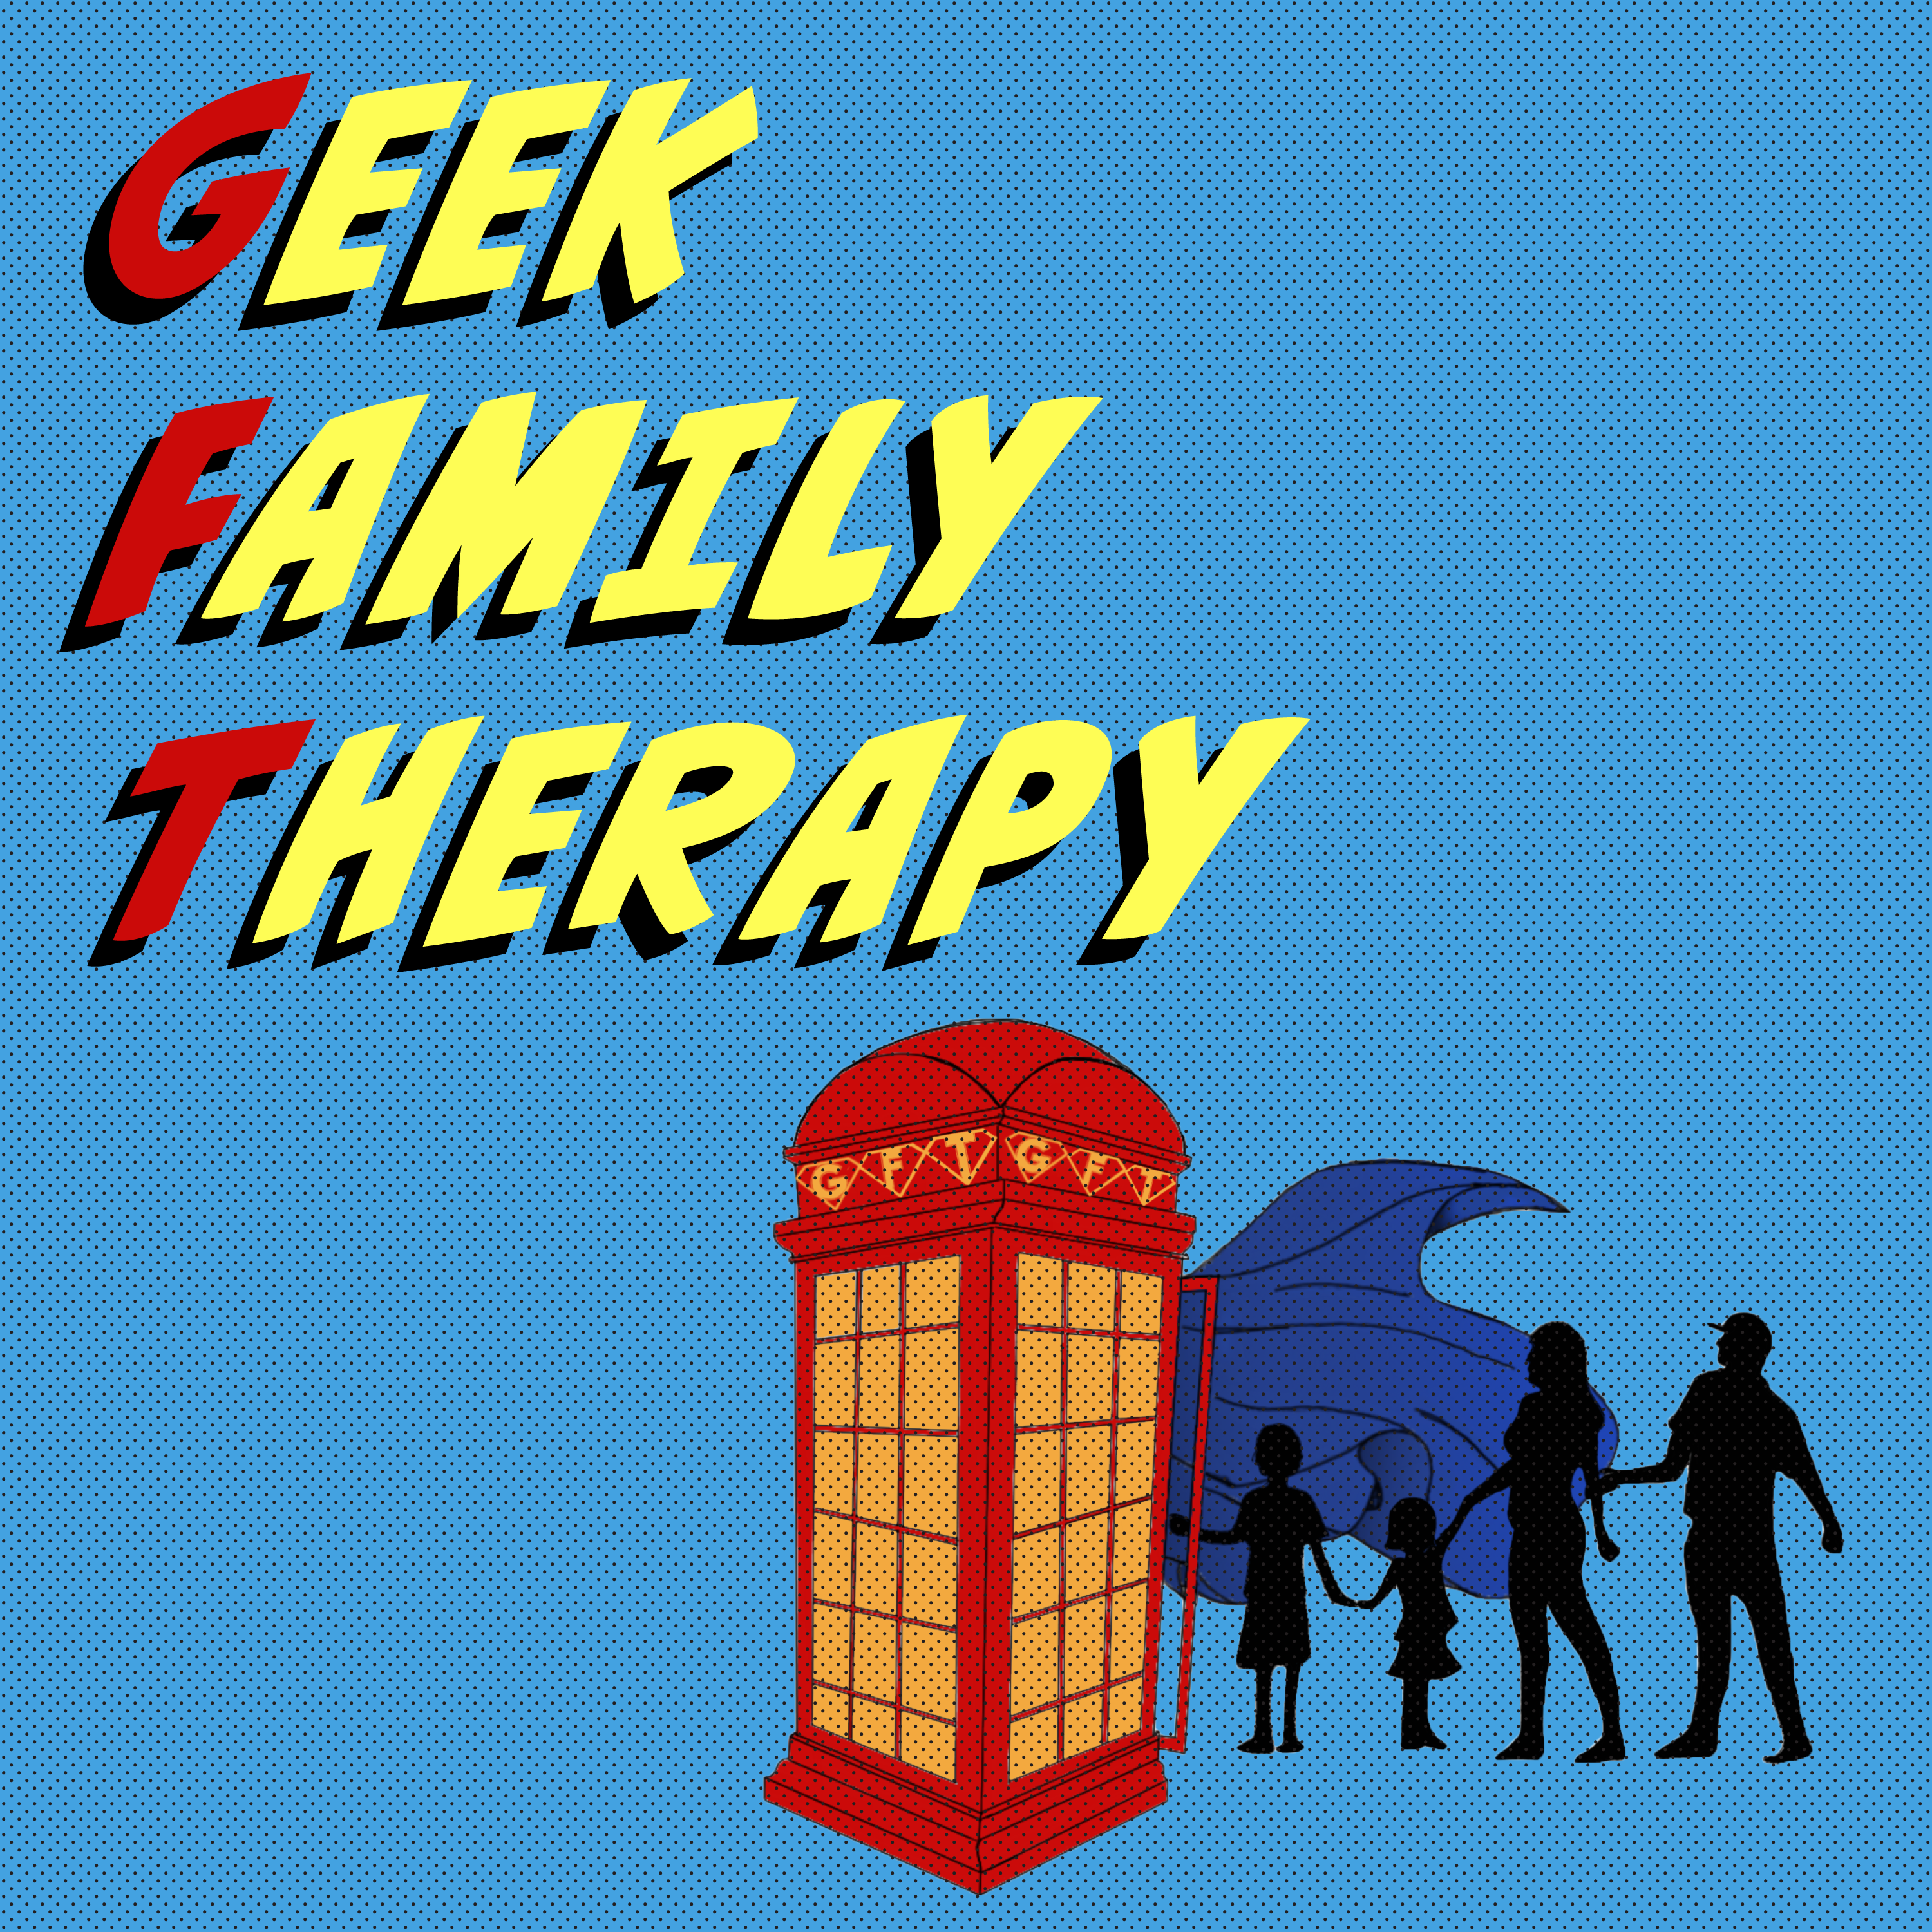 Geek Family Therapy